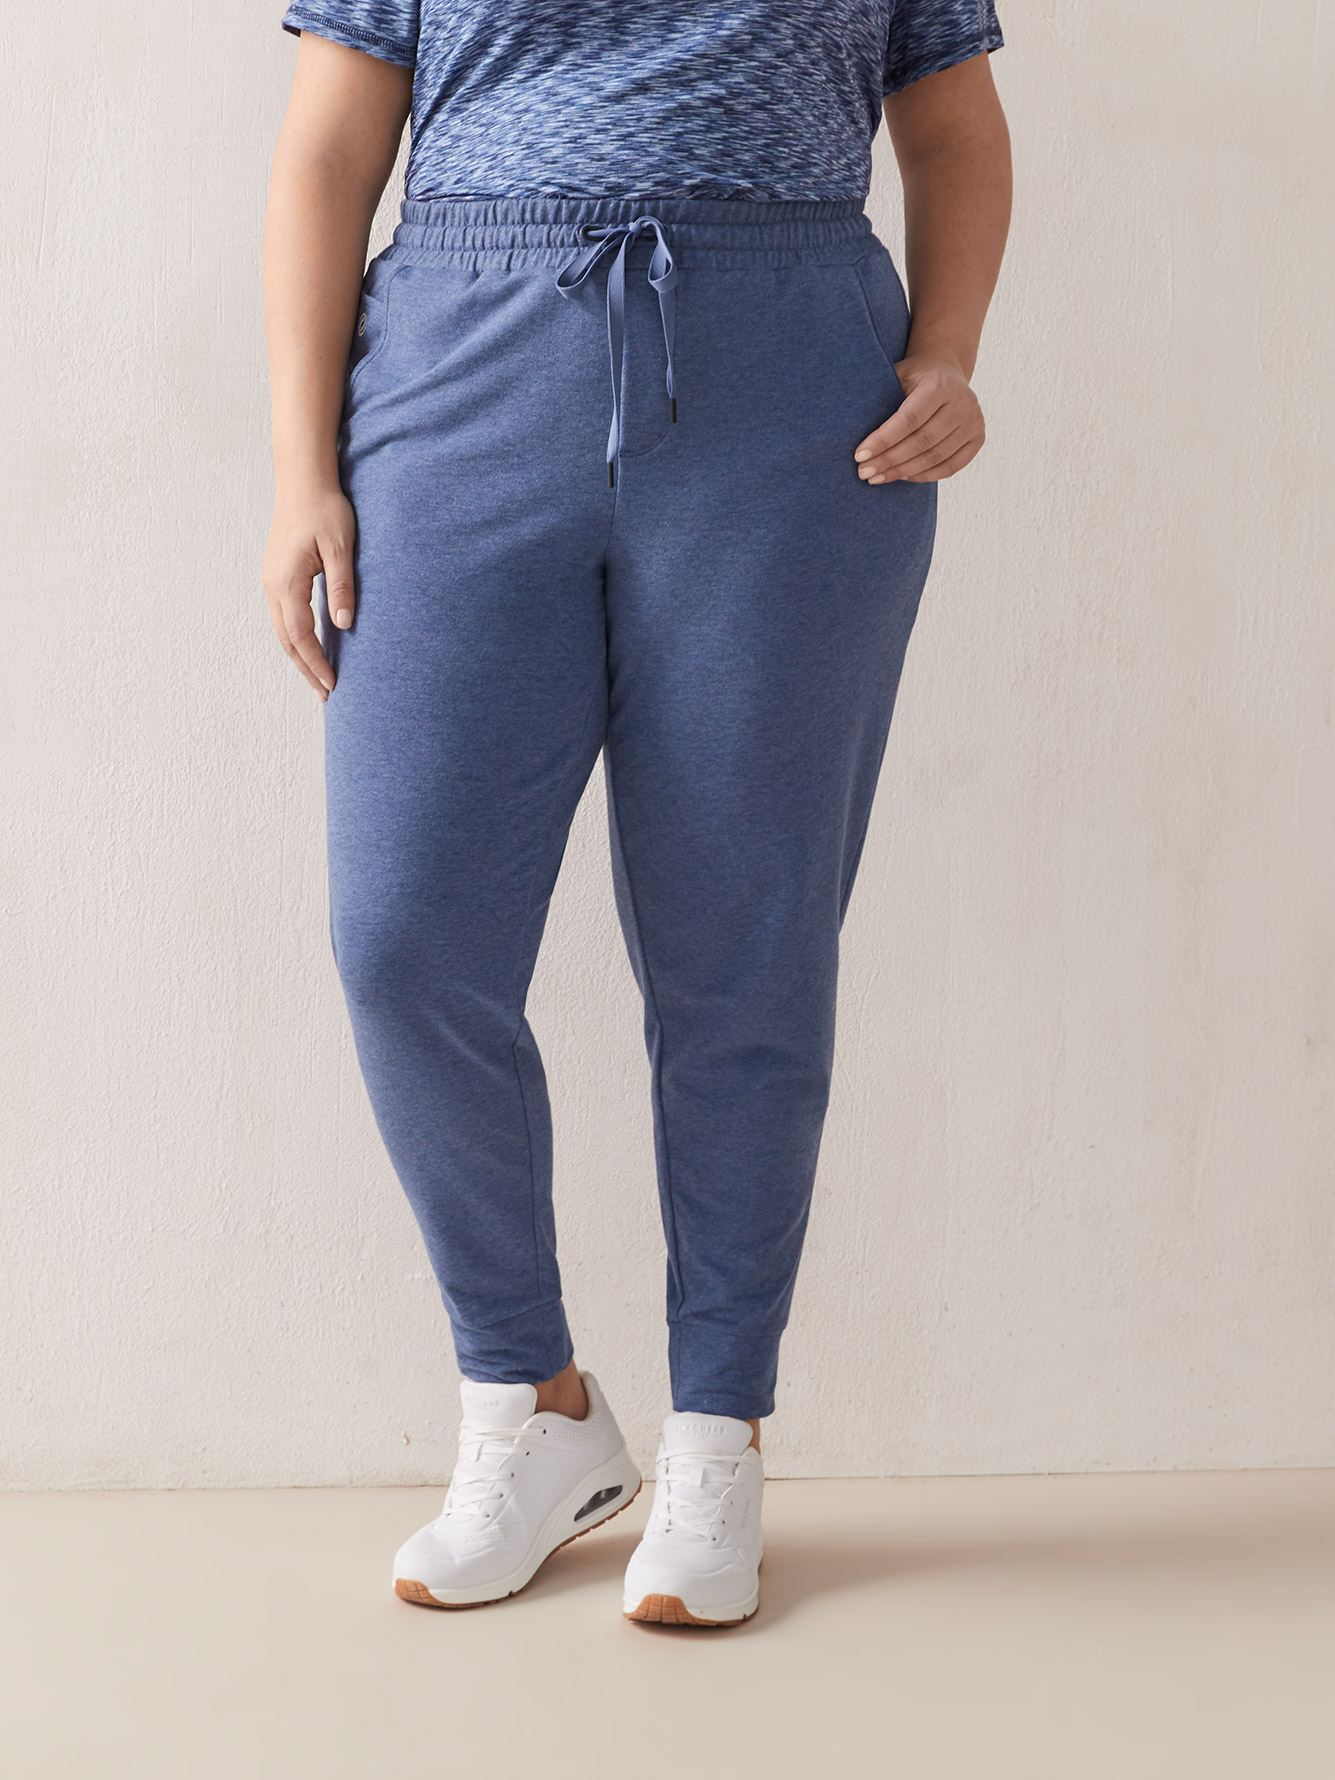 French Terry Jogger With Pockets - Active Zone